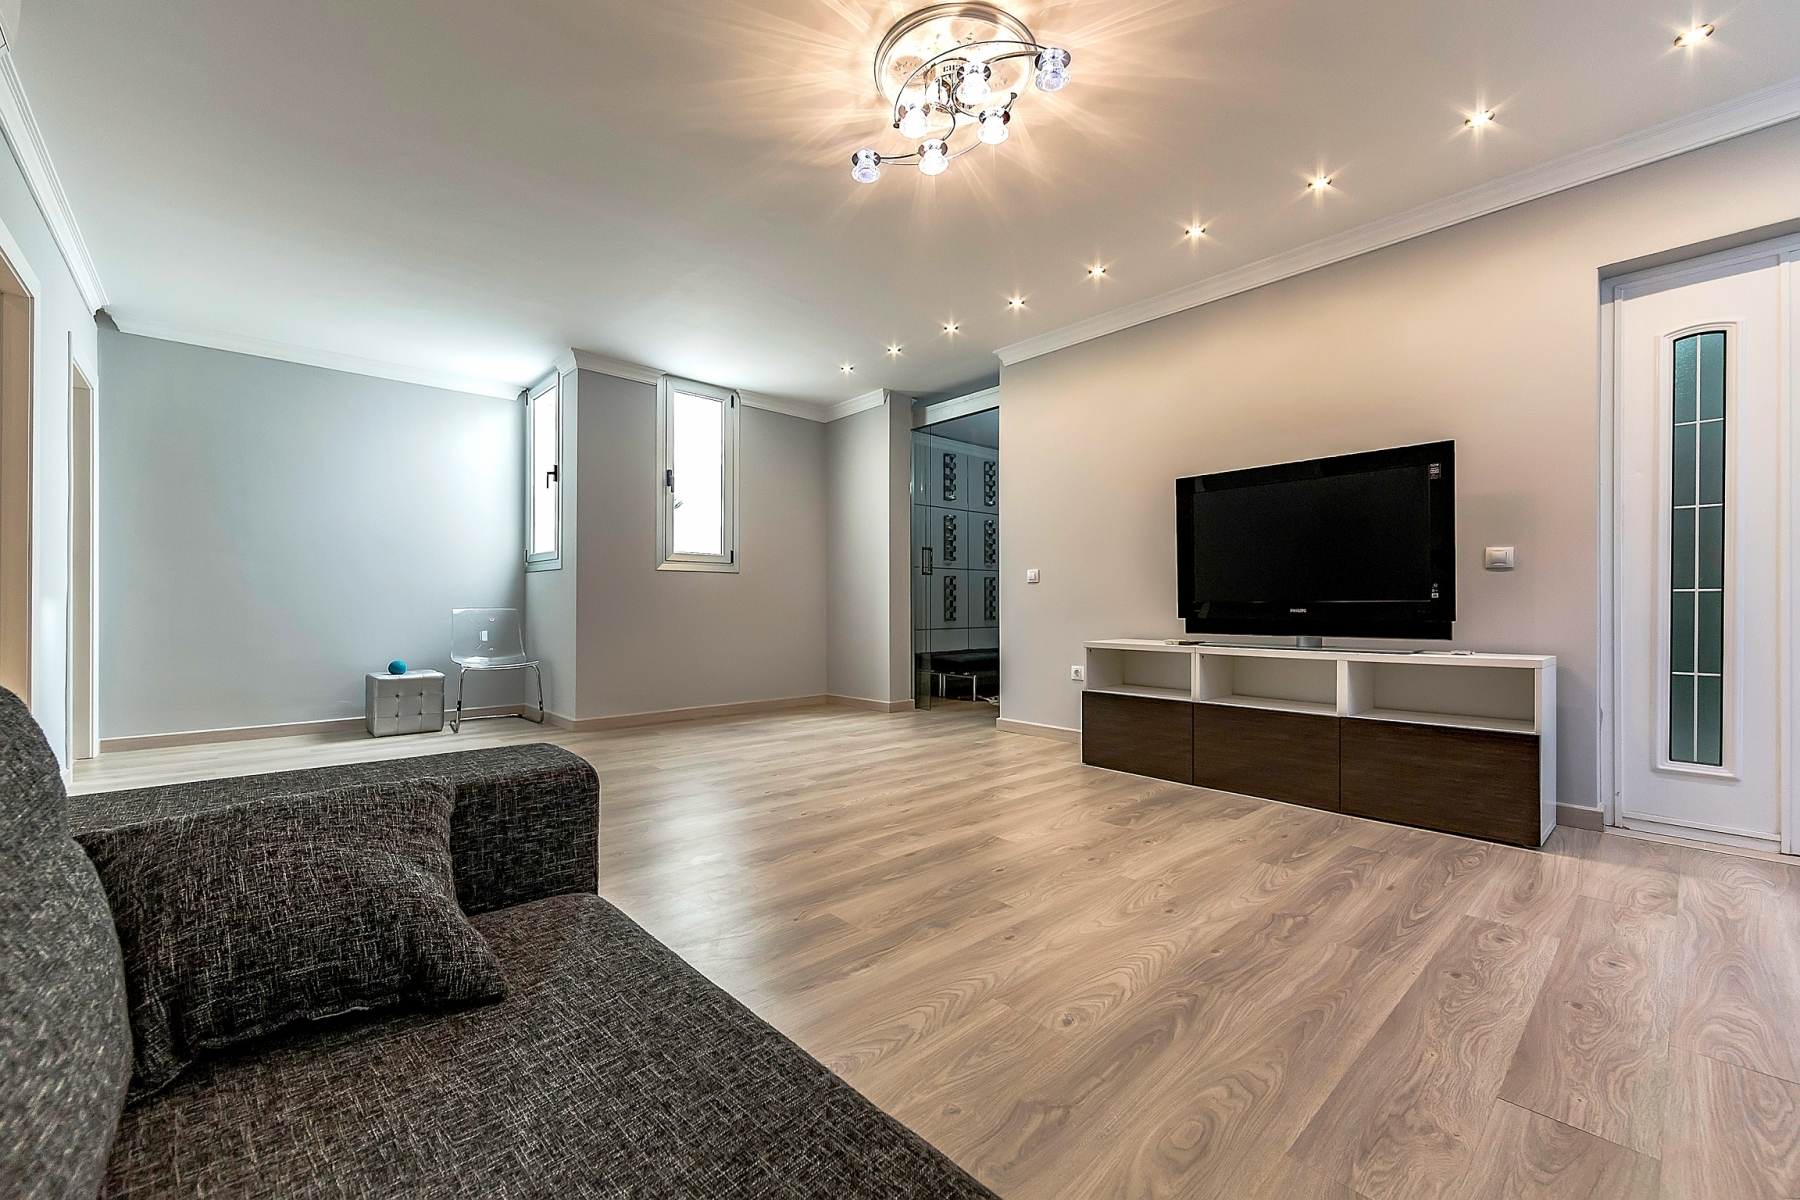 Properties for Sale in Tenerife, Canary Islands, Spain   SylkWayStar Real Estate. Luxury villa in the fashionable area of the south of the island of Tenerife – Madroñal.. Image-22788